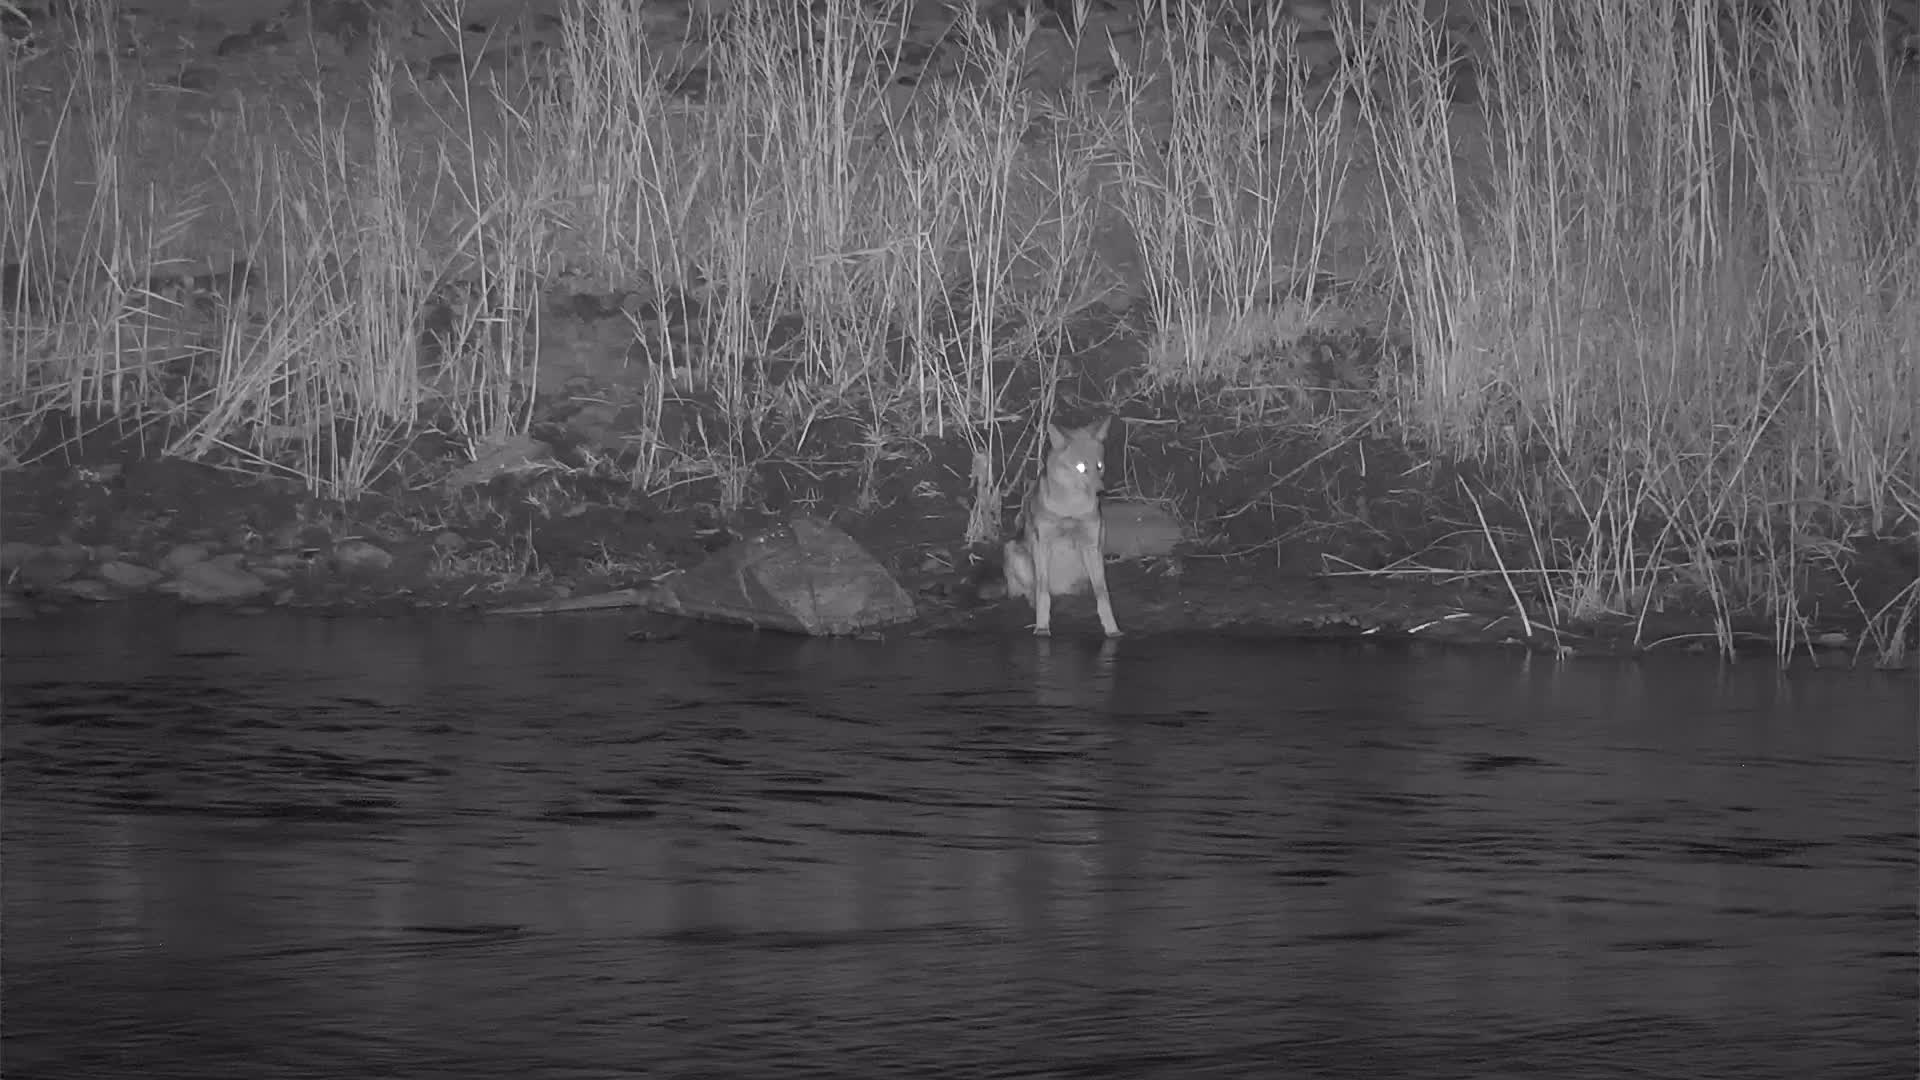 VIDEO: Jackal  sitting on the river and looks if he could get something